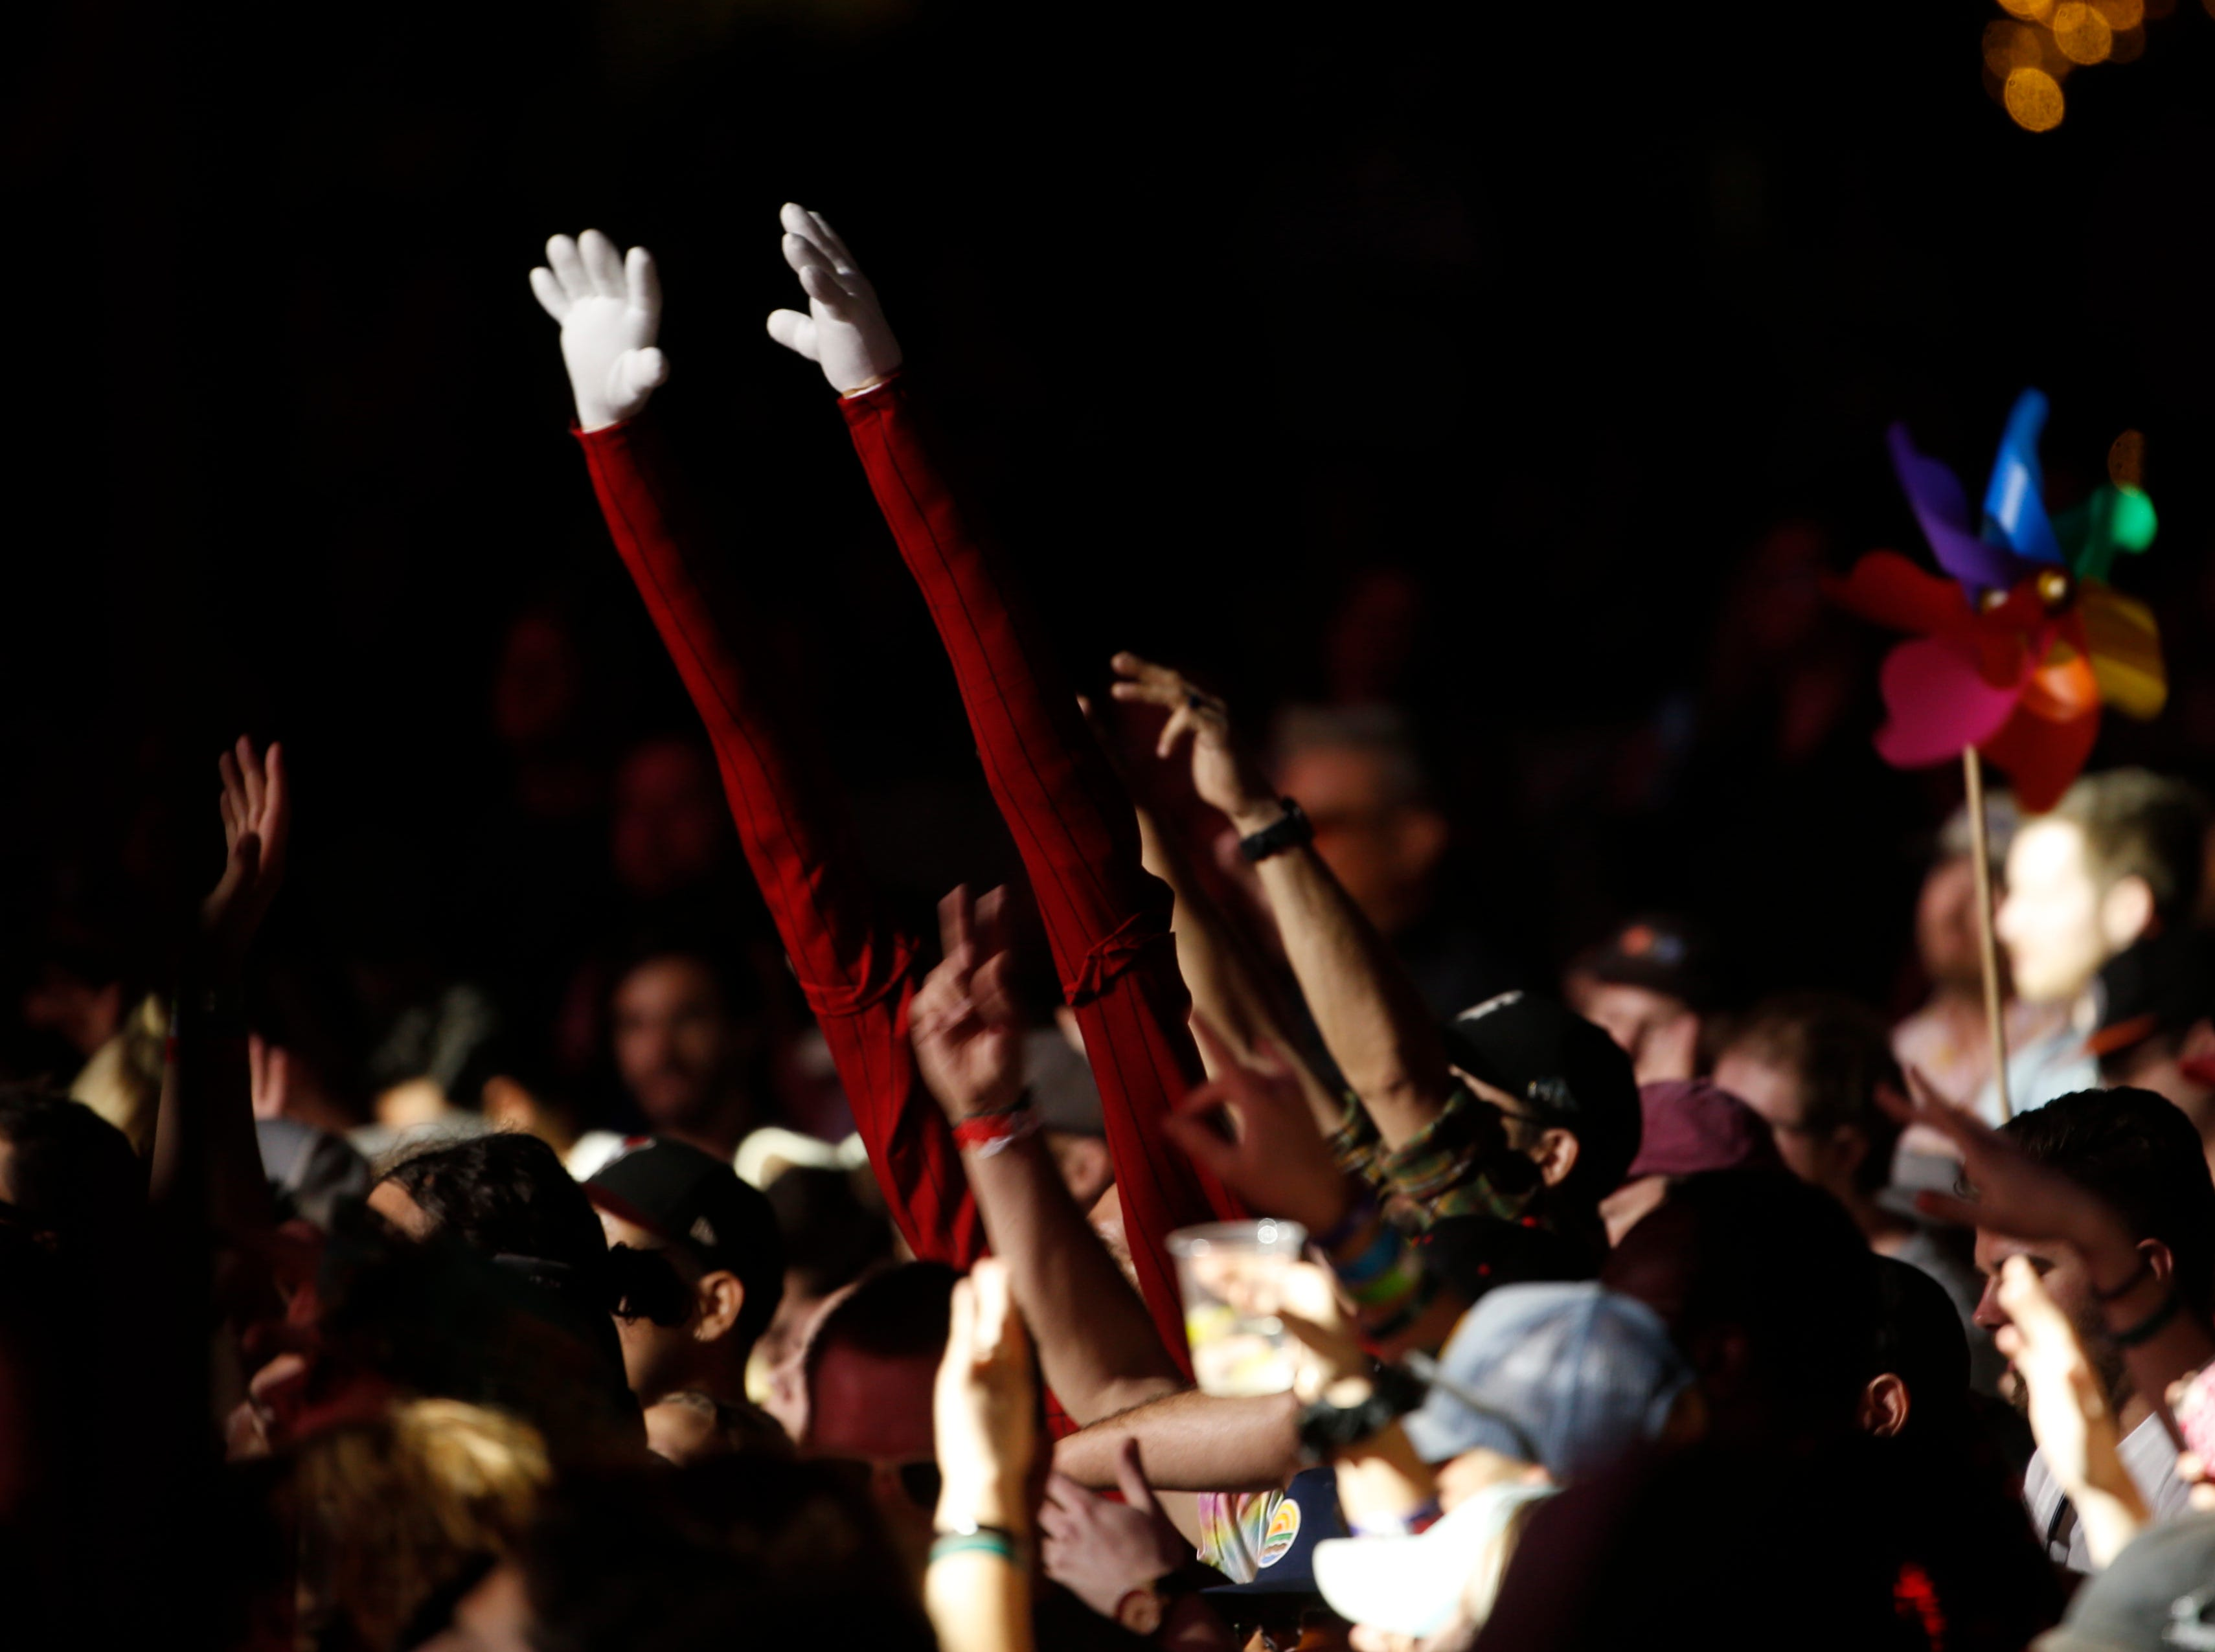 A fan with fake long arms listens to Lettuce perform during McDowell Mountain Music Festival in Phoenix on March 3, 2019.